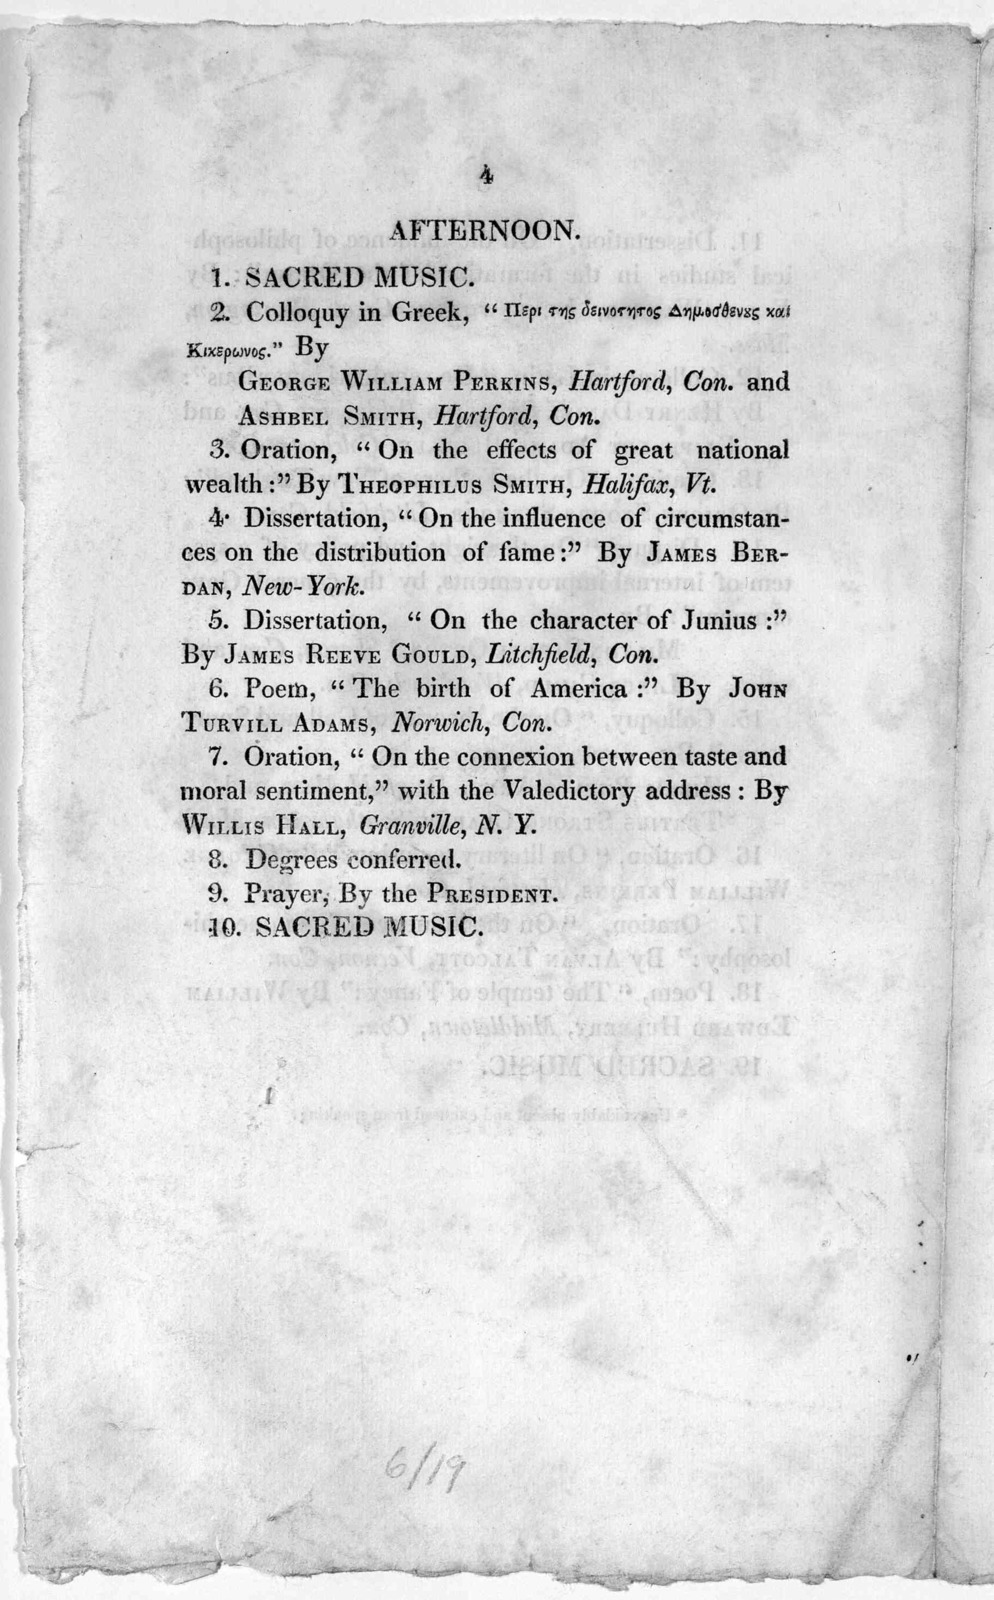 Order of exercises at commencement, Yale College, Sept. 8, 1824. New-Haven, Printed at the Journal office. 1824.